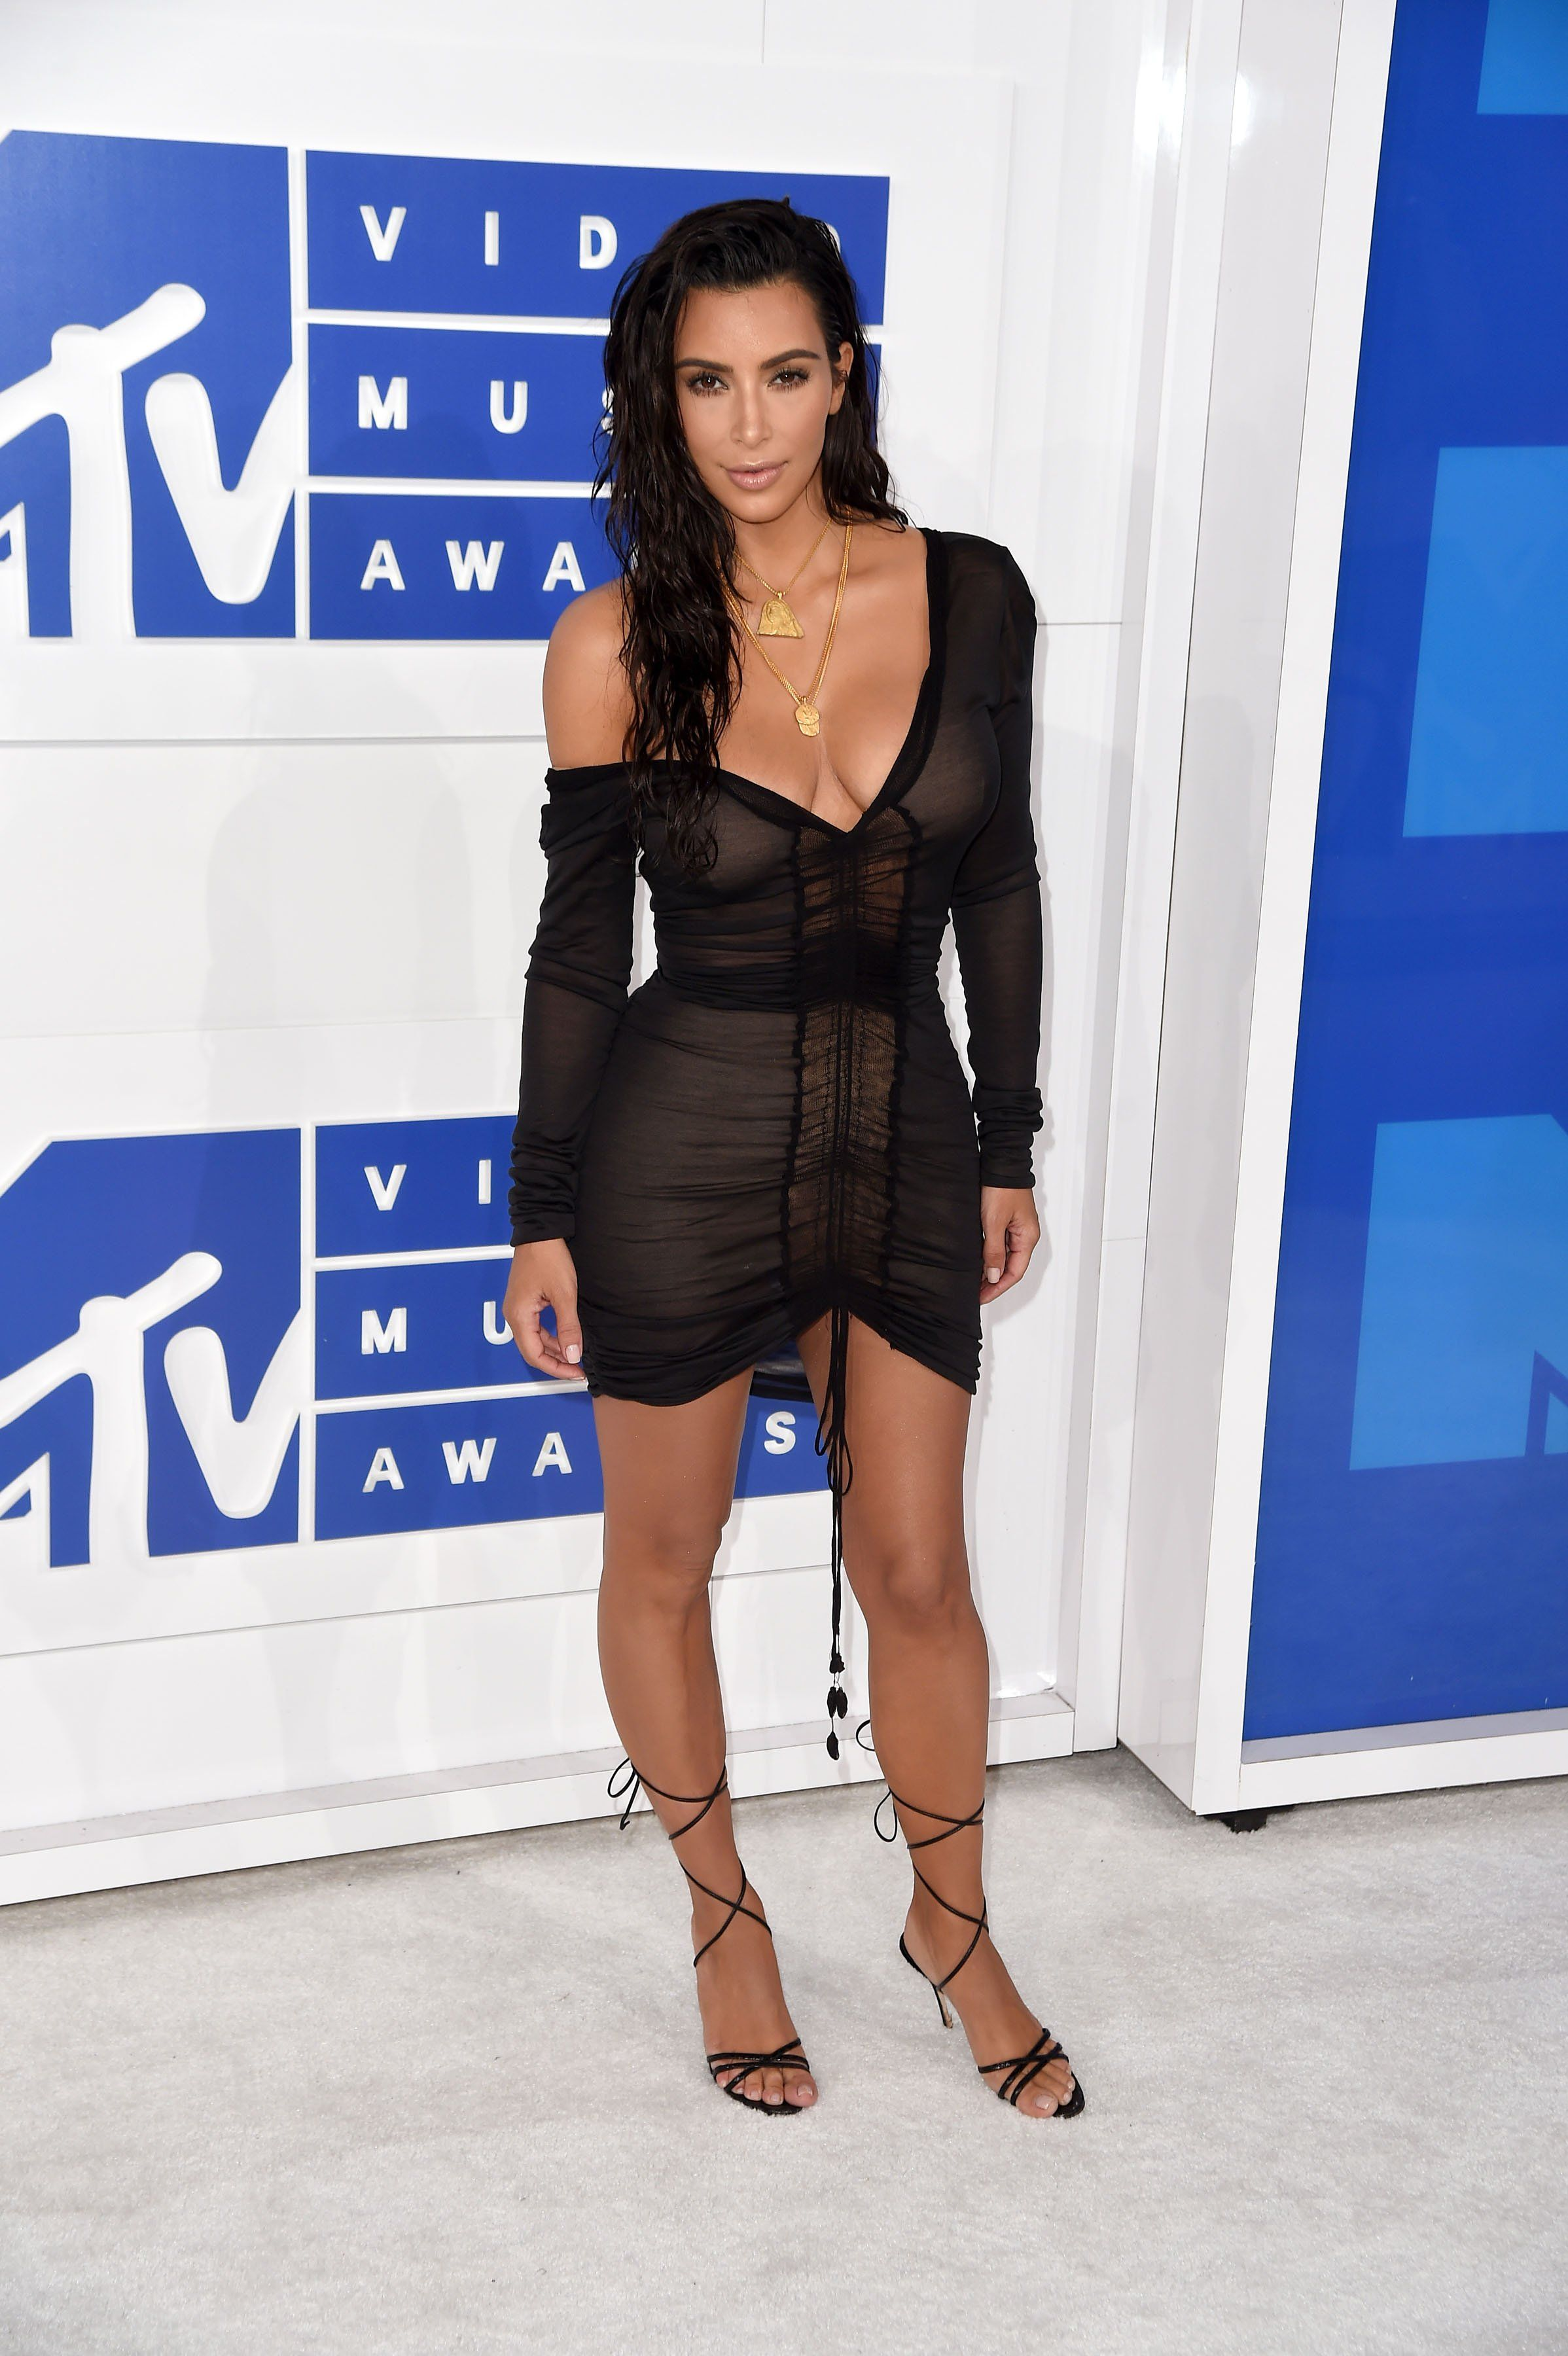 Mtv Vmas 2016 The Best Dressed Celebrities On The Red Carpet Gato